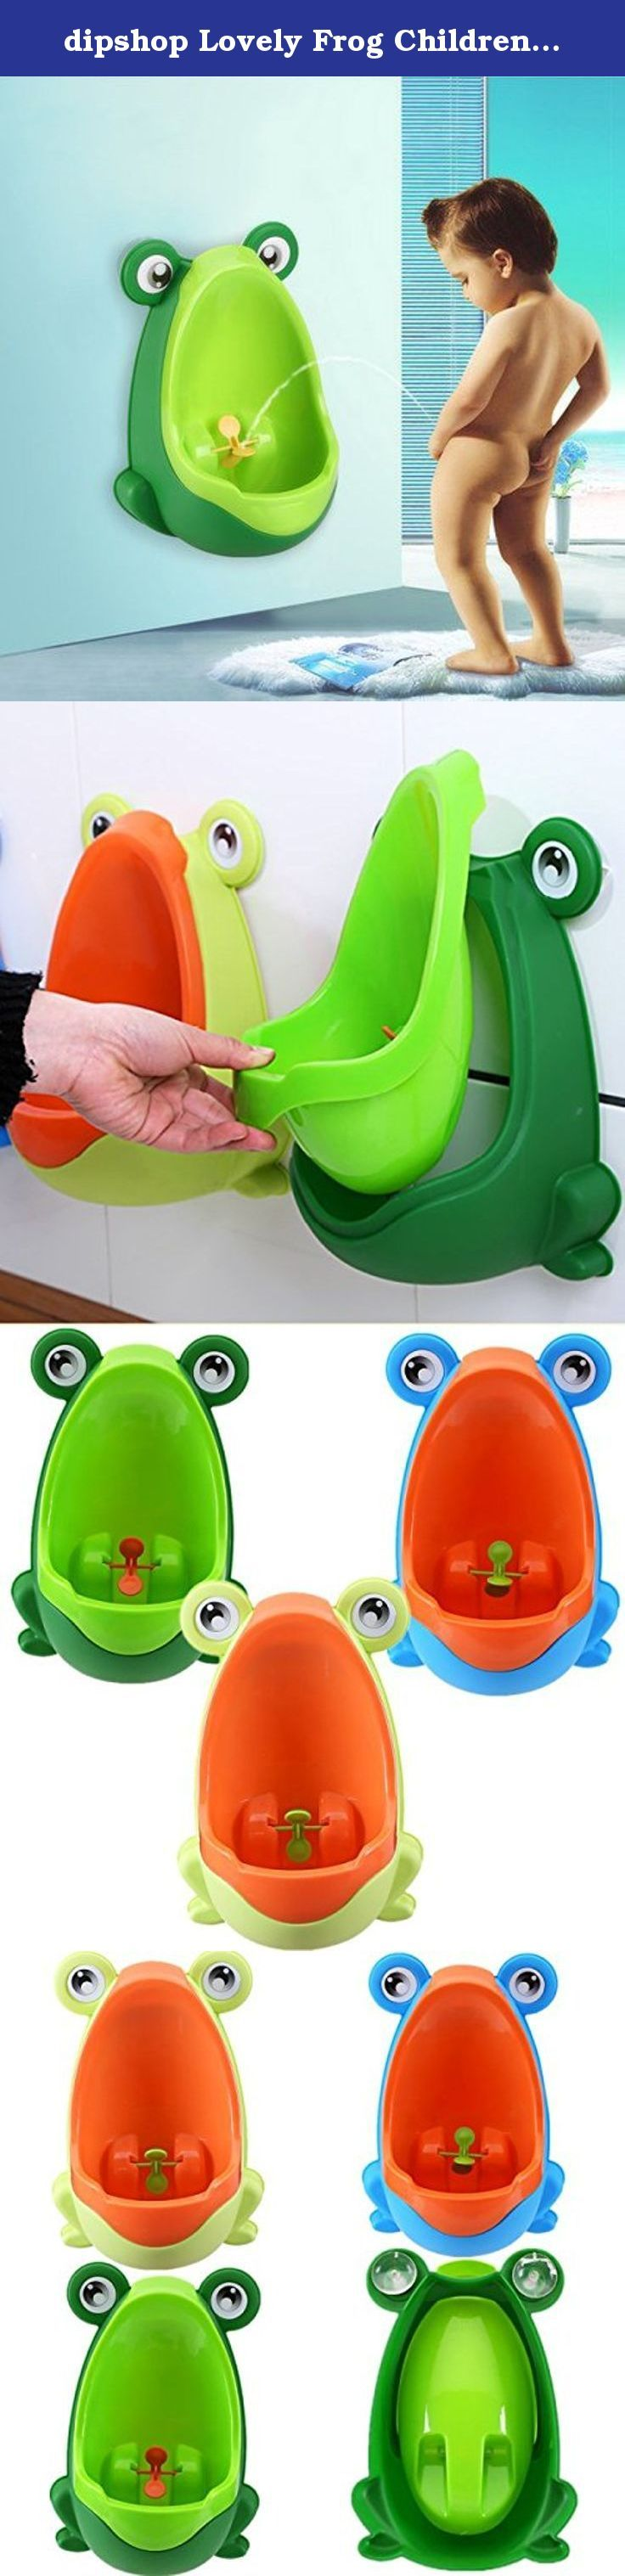 dipshop Lovely Frog Children Kids Potty Removable Toilet Training Kids Urinal Early Lear ( Fruit Green and Orange ). : Lovely Frog Children Kids Potty Removable Toilet Training Kids Urinal Early Learning Boys Pee Trainer Bathroom Environmentally friendly material, nontoxic and no peculiar smell. Urine groove separation design and light surface makes the item easy to clean. Lovely frog shape and rotating windmill improves your babies' interest and trains they pee by themselves. Strong…